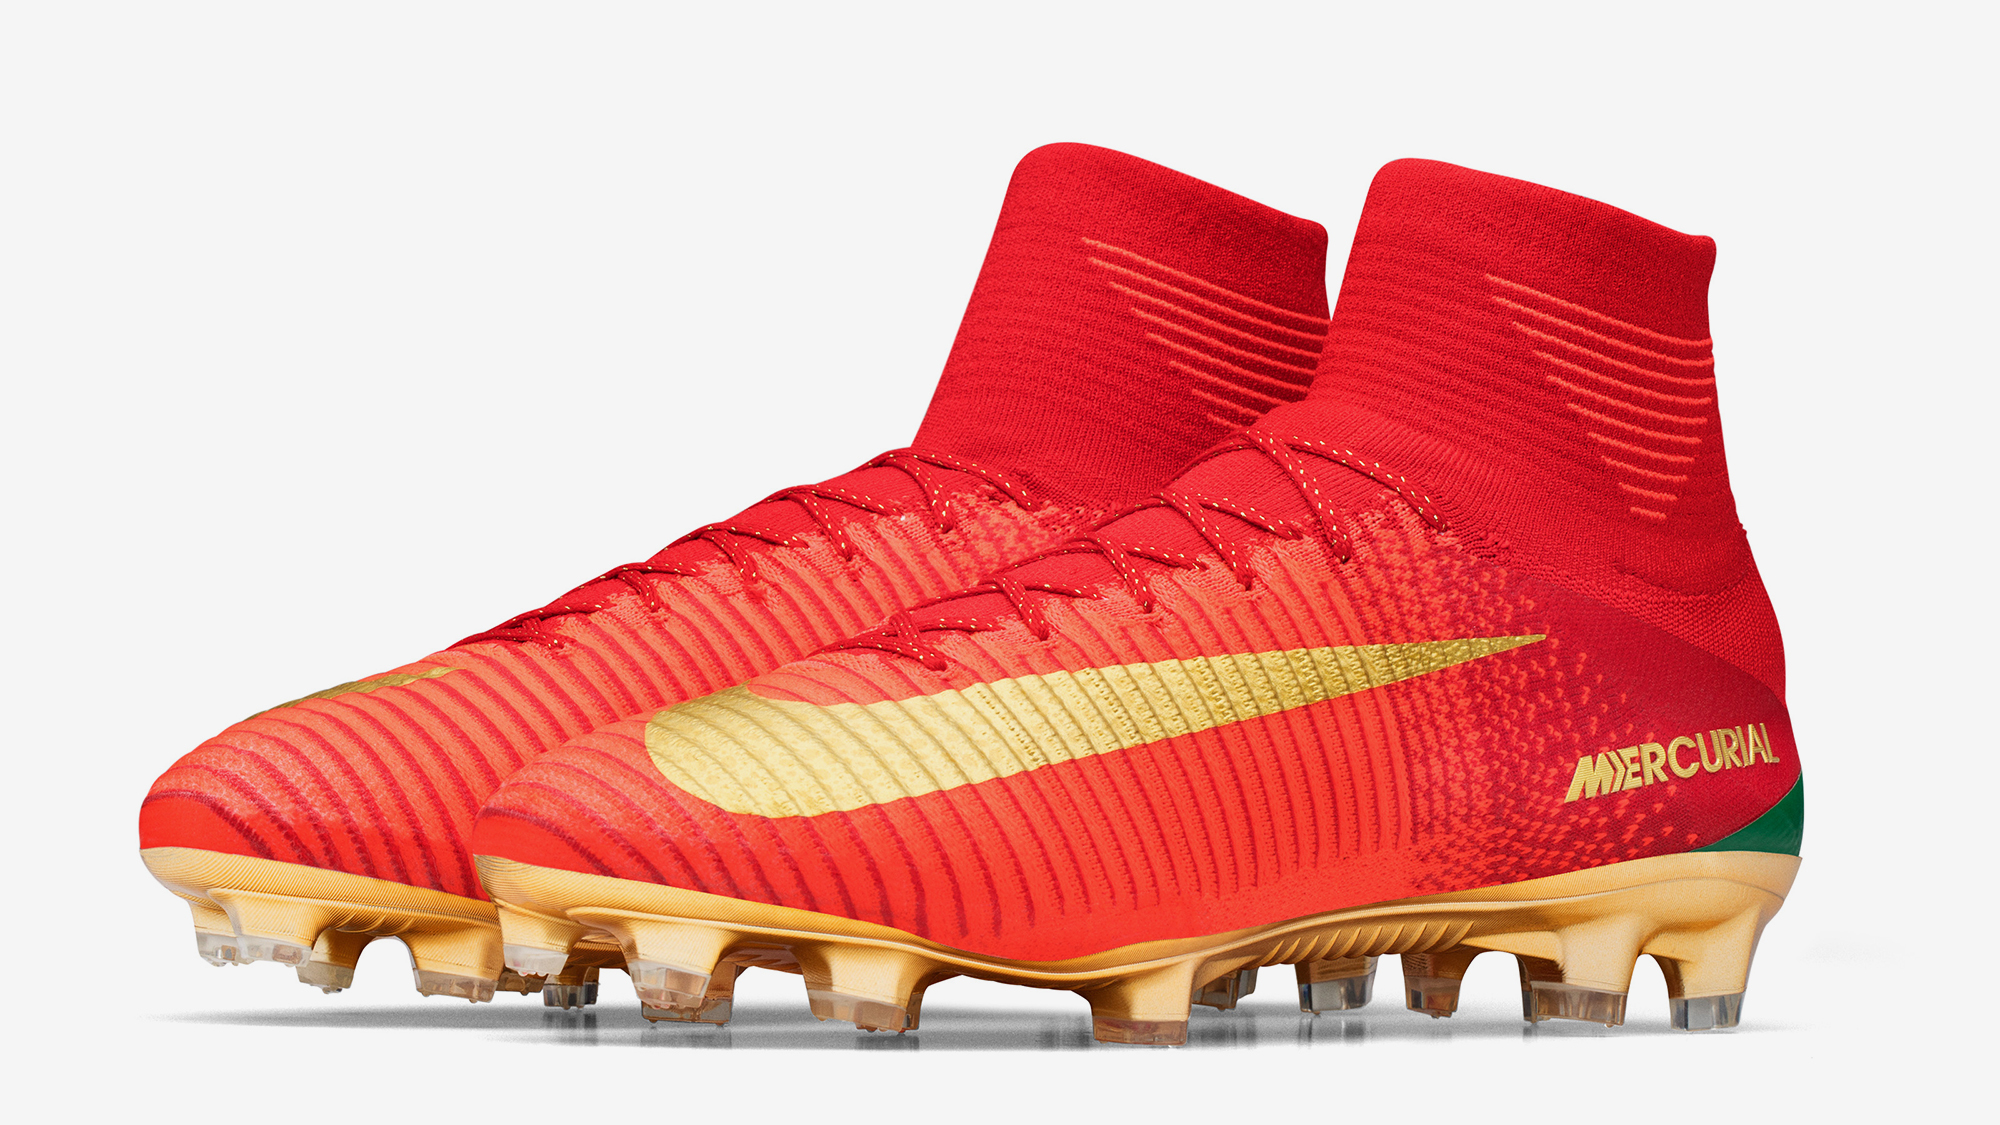 special-portugal-boots-for-cristiano-ronaldo-cr7-mercurial-campeoes1_70642